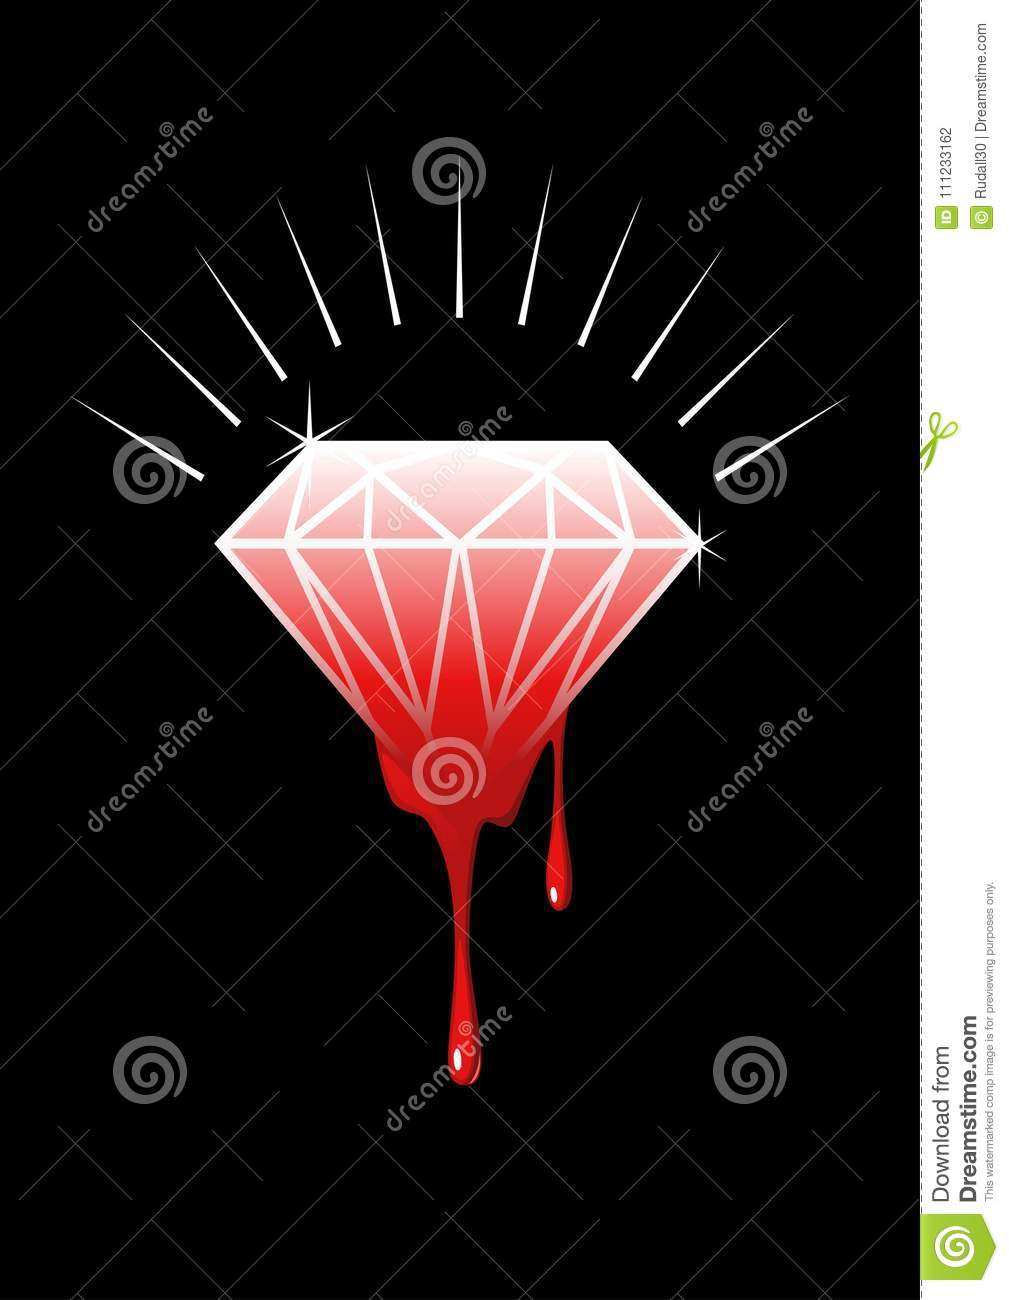 dripping perpetuation in war and africa role reflective sierra with symbolizes leone beautiful on stock congo or capitalism light surface liberia of depositphotos diamond photo the conflict sparkling blood a